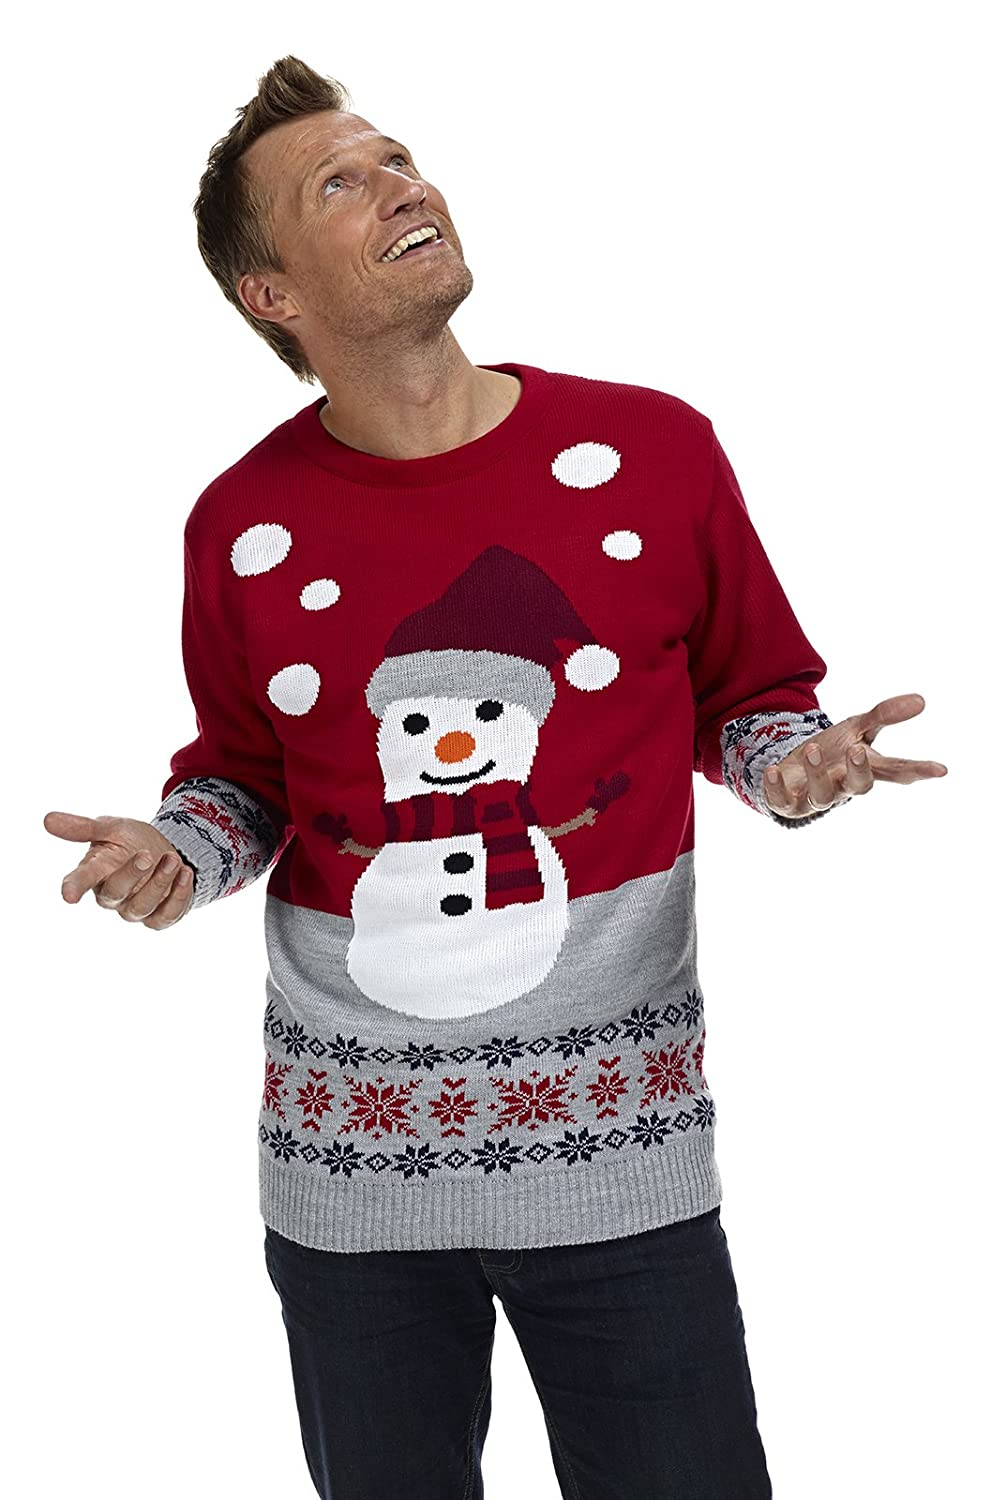 Unisex Adults Snowman Xmas Jumper